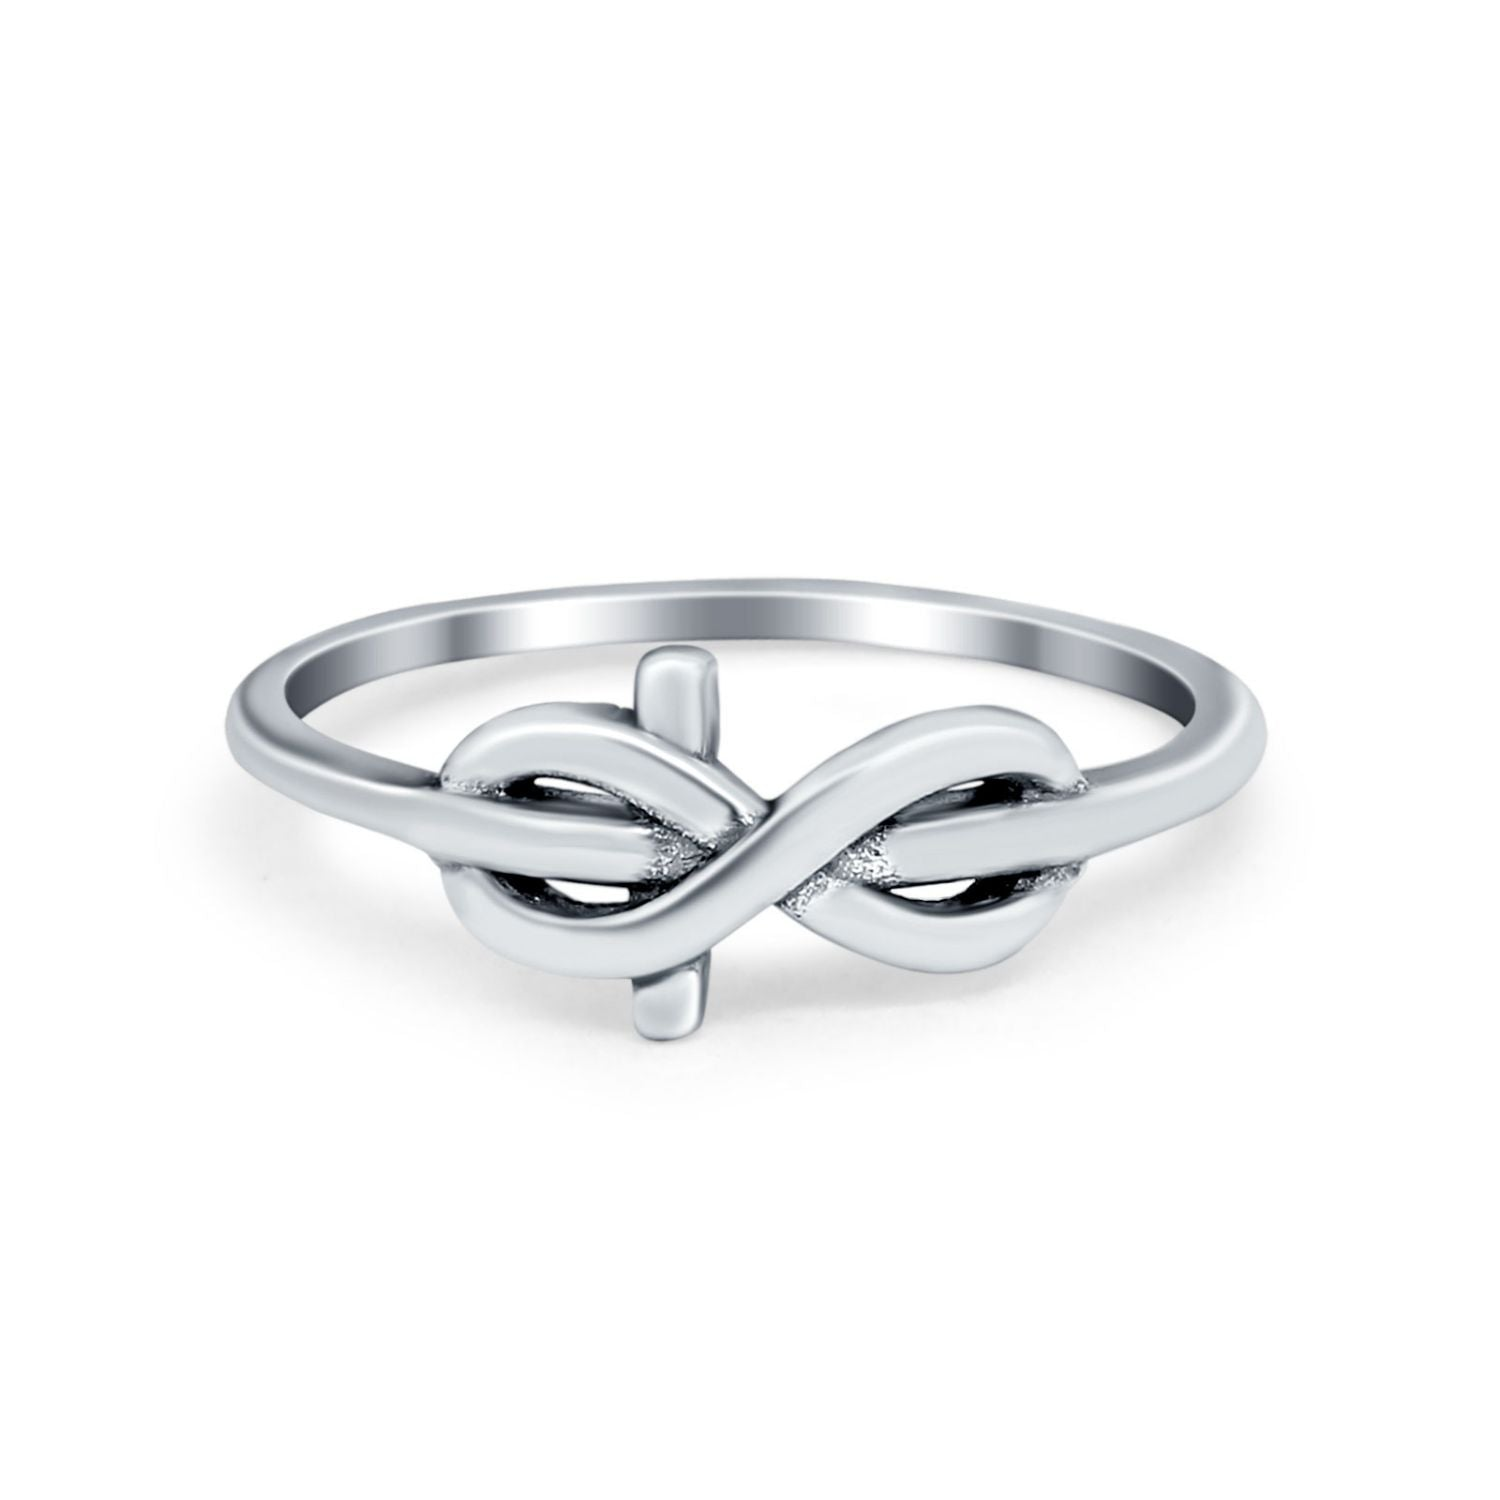 Tangled Knot Infinity Band Ring Thumb Ring Oxidized Round 925 Sterling Silver